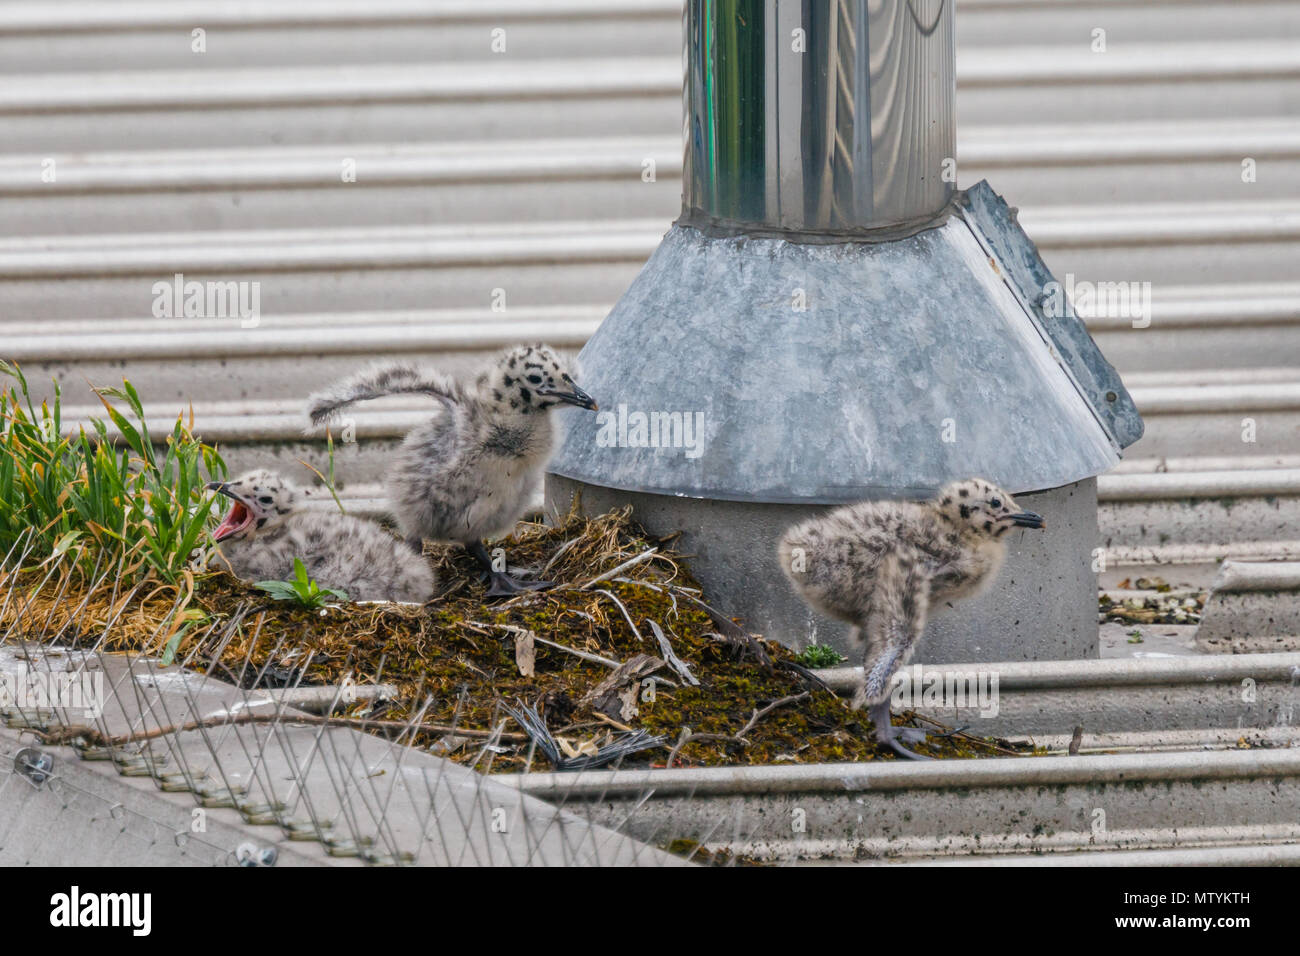 Forty Lane, Wembley Park, UK. 31st May 2018. Recently hatched Common Gull (Seagull) chicks on urban supermarket roof.  3 hungry Larus canus chicks head out their nest in search of breakfast. Credit: amanda rose/Alamy Live News - Stock Image